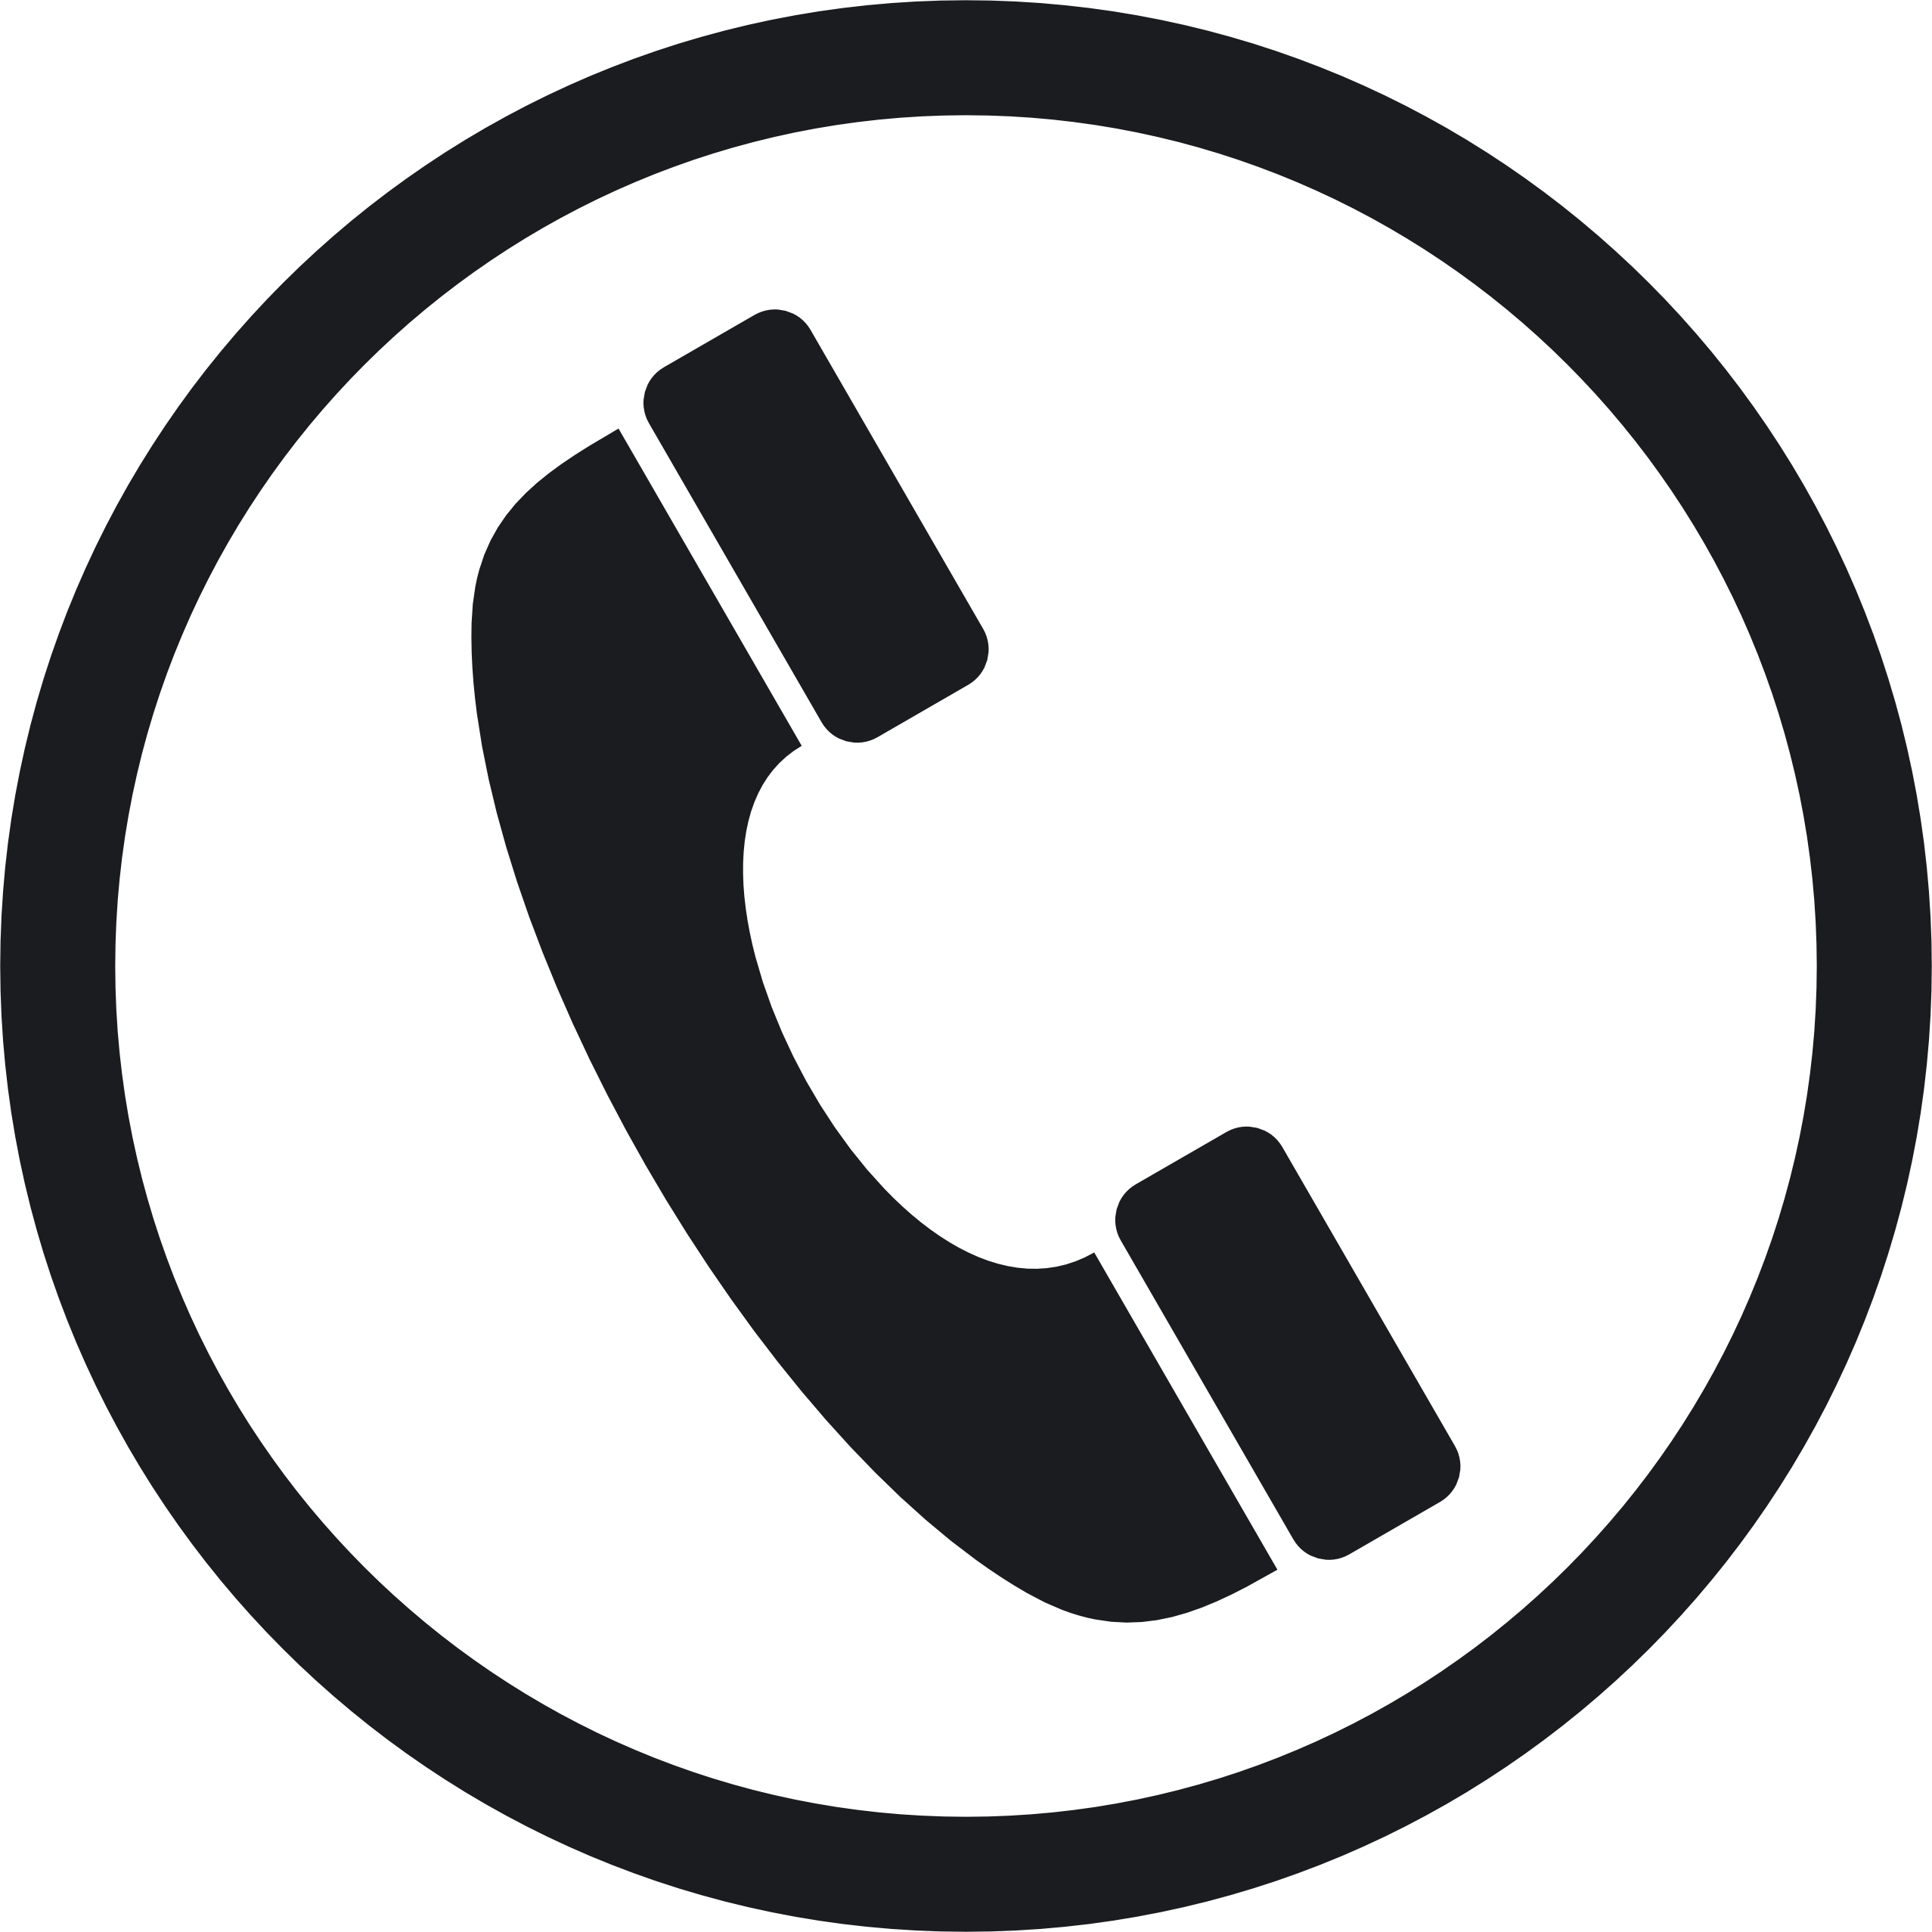 15 White Phone Icon Vector Images